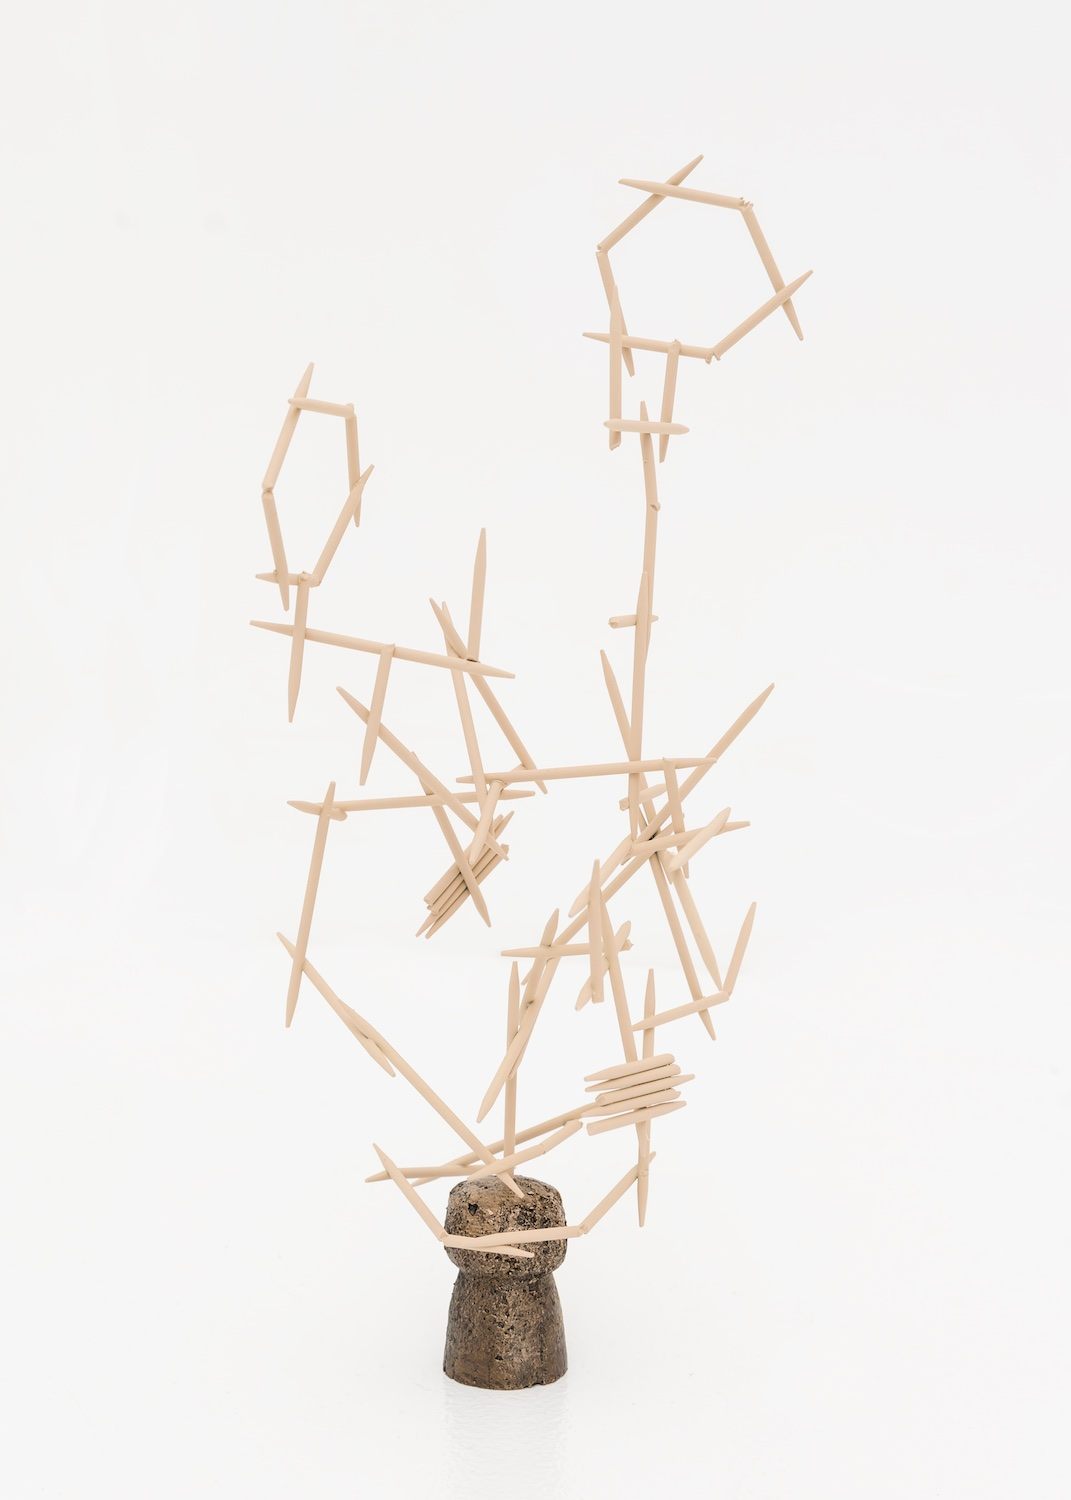 Chris Bradley  Mnemonic  2015 Painted steel and bronze 7h x 5w x 5d in CB124